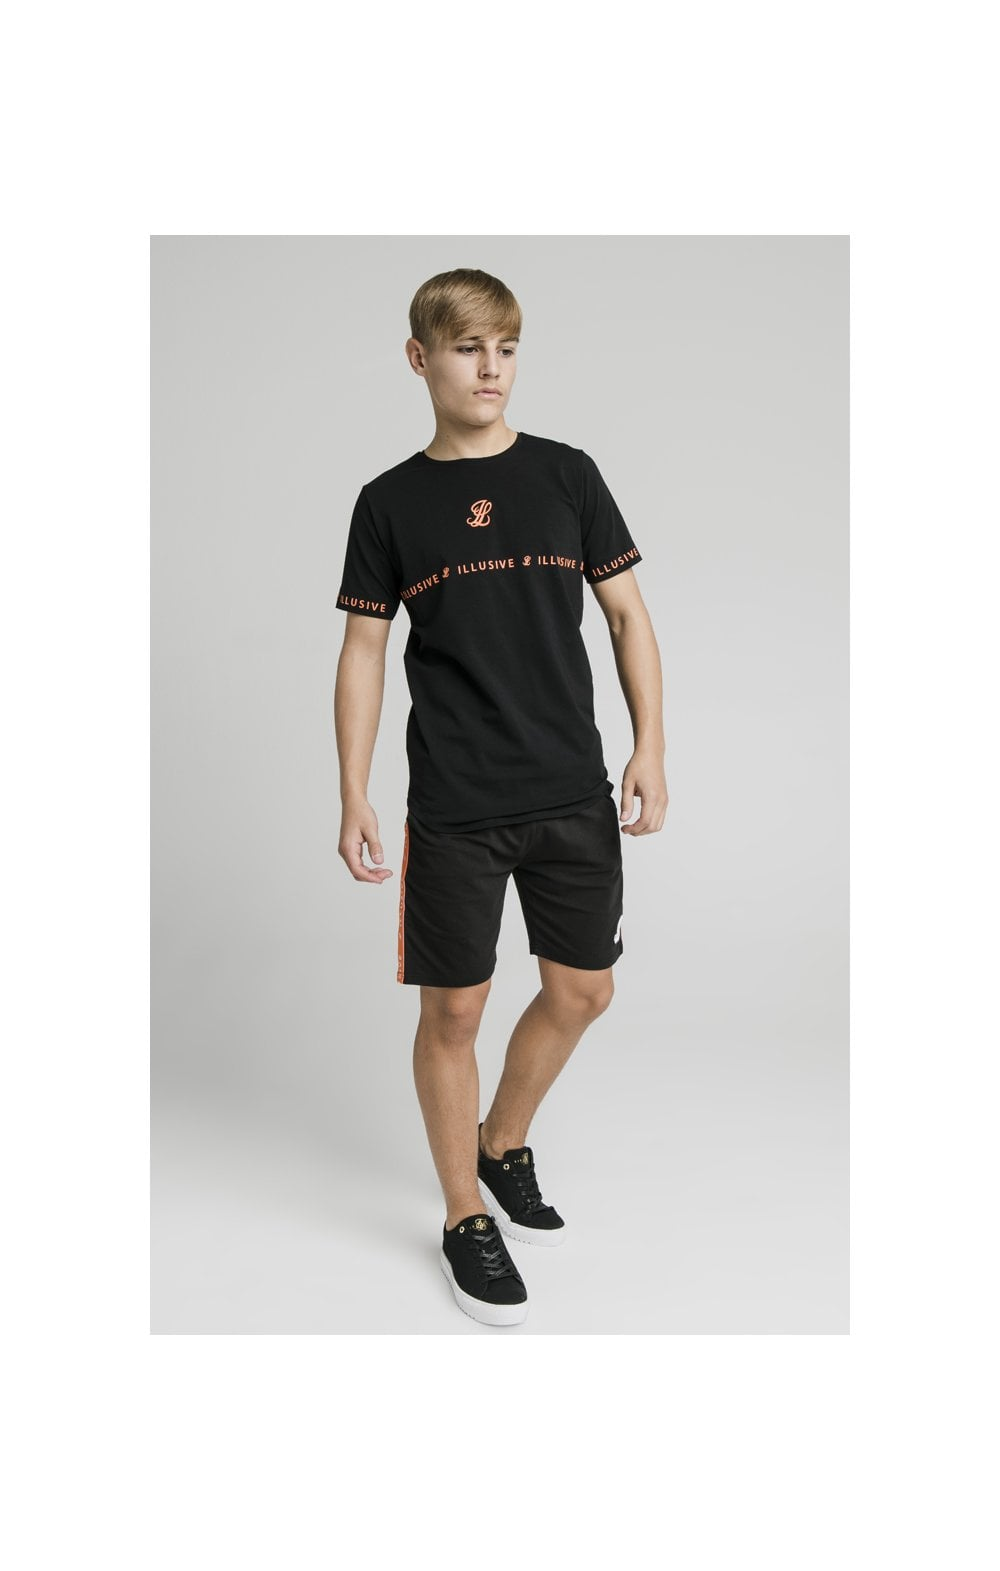 Illusive London Tape Tee - Black (3)